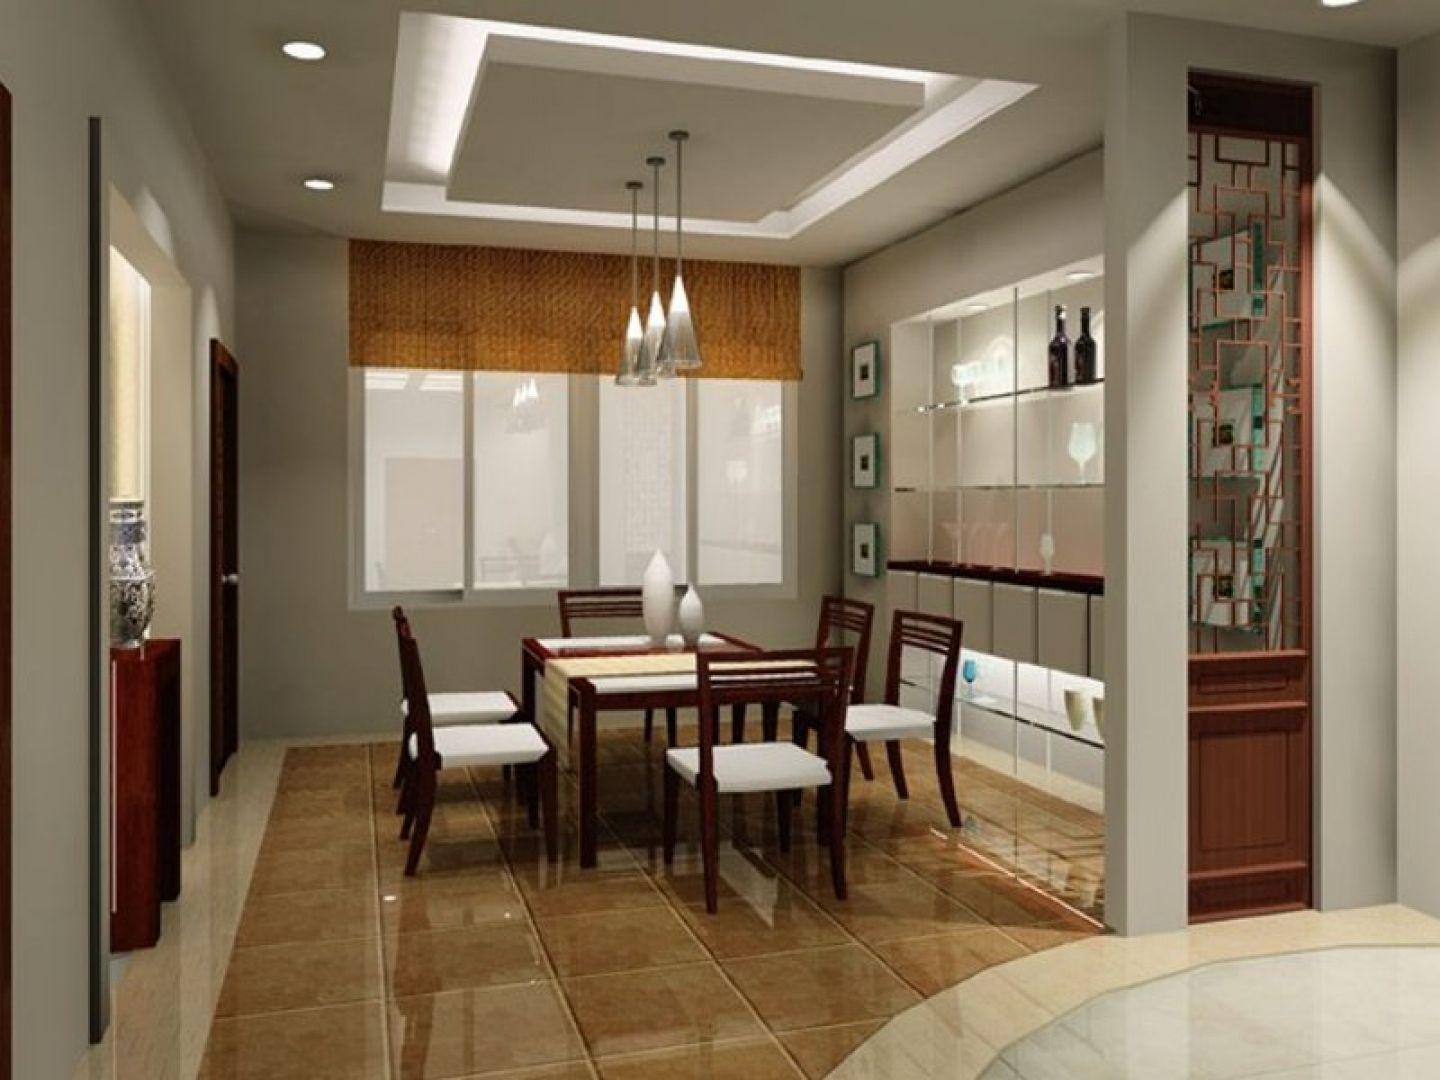 exquisite small dining room idea designs with small dining room small dining room design ideas - Design Dining Room